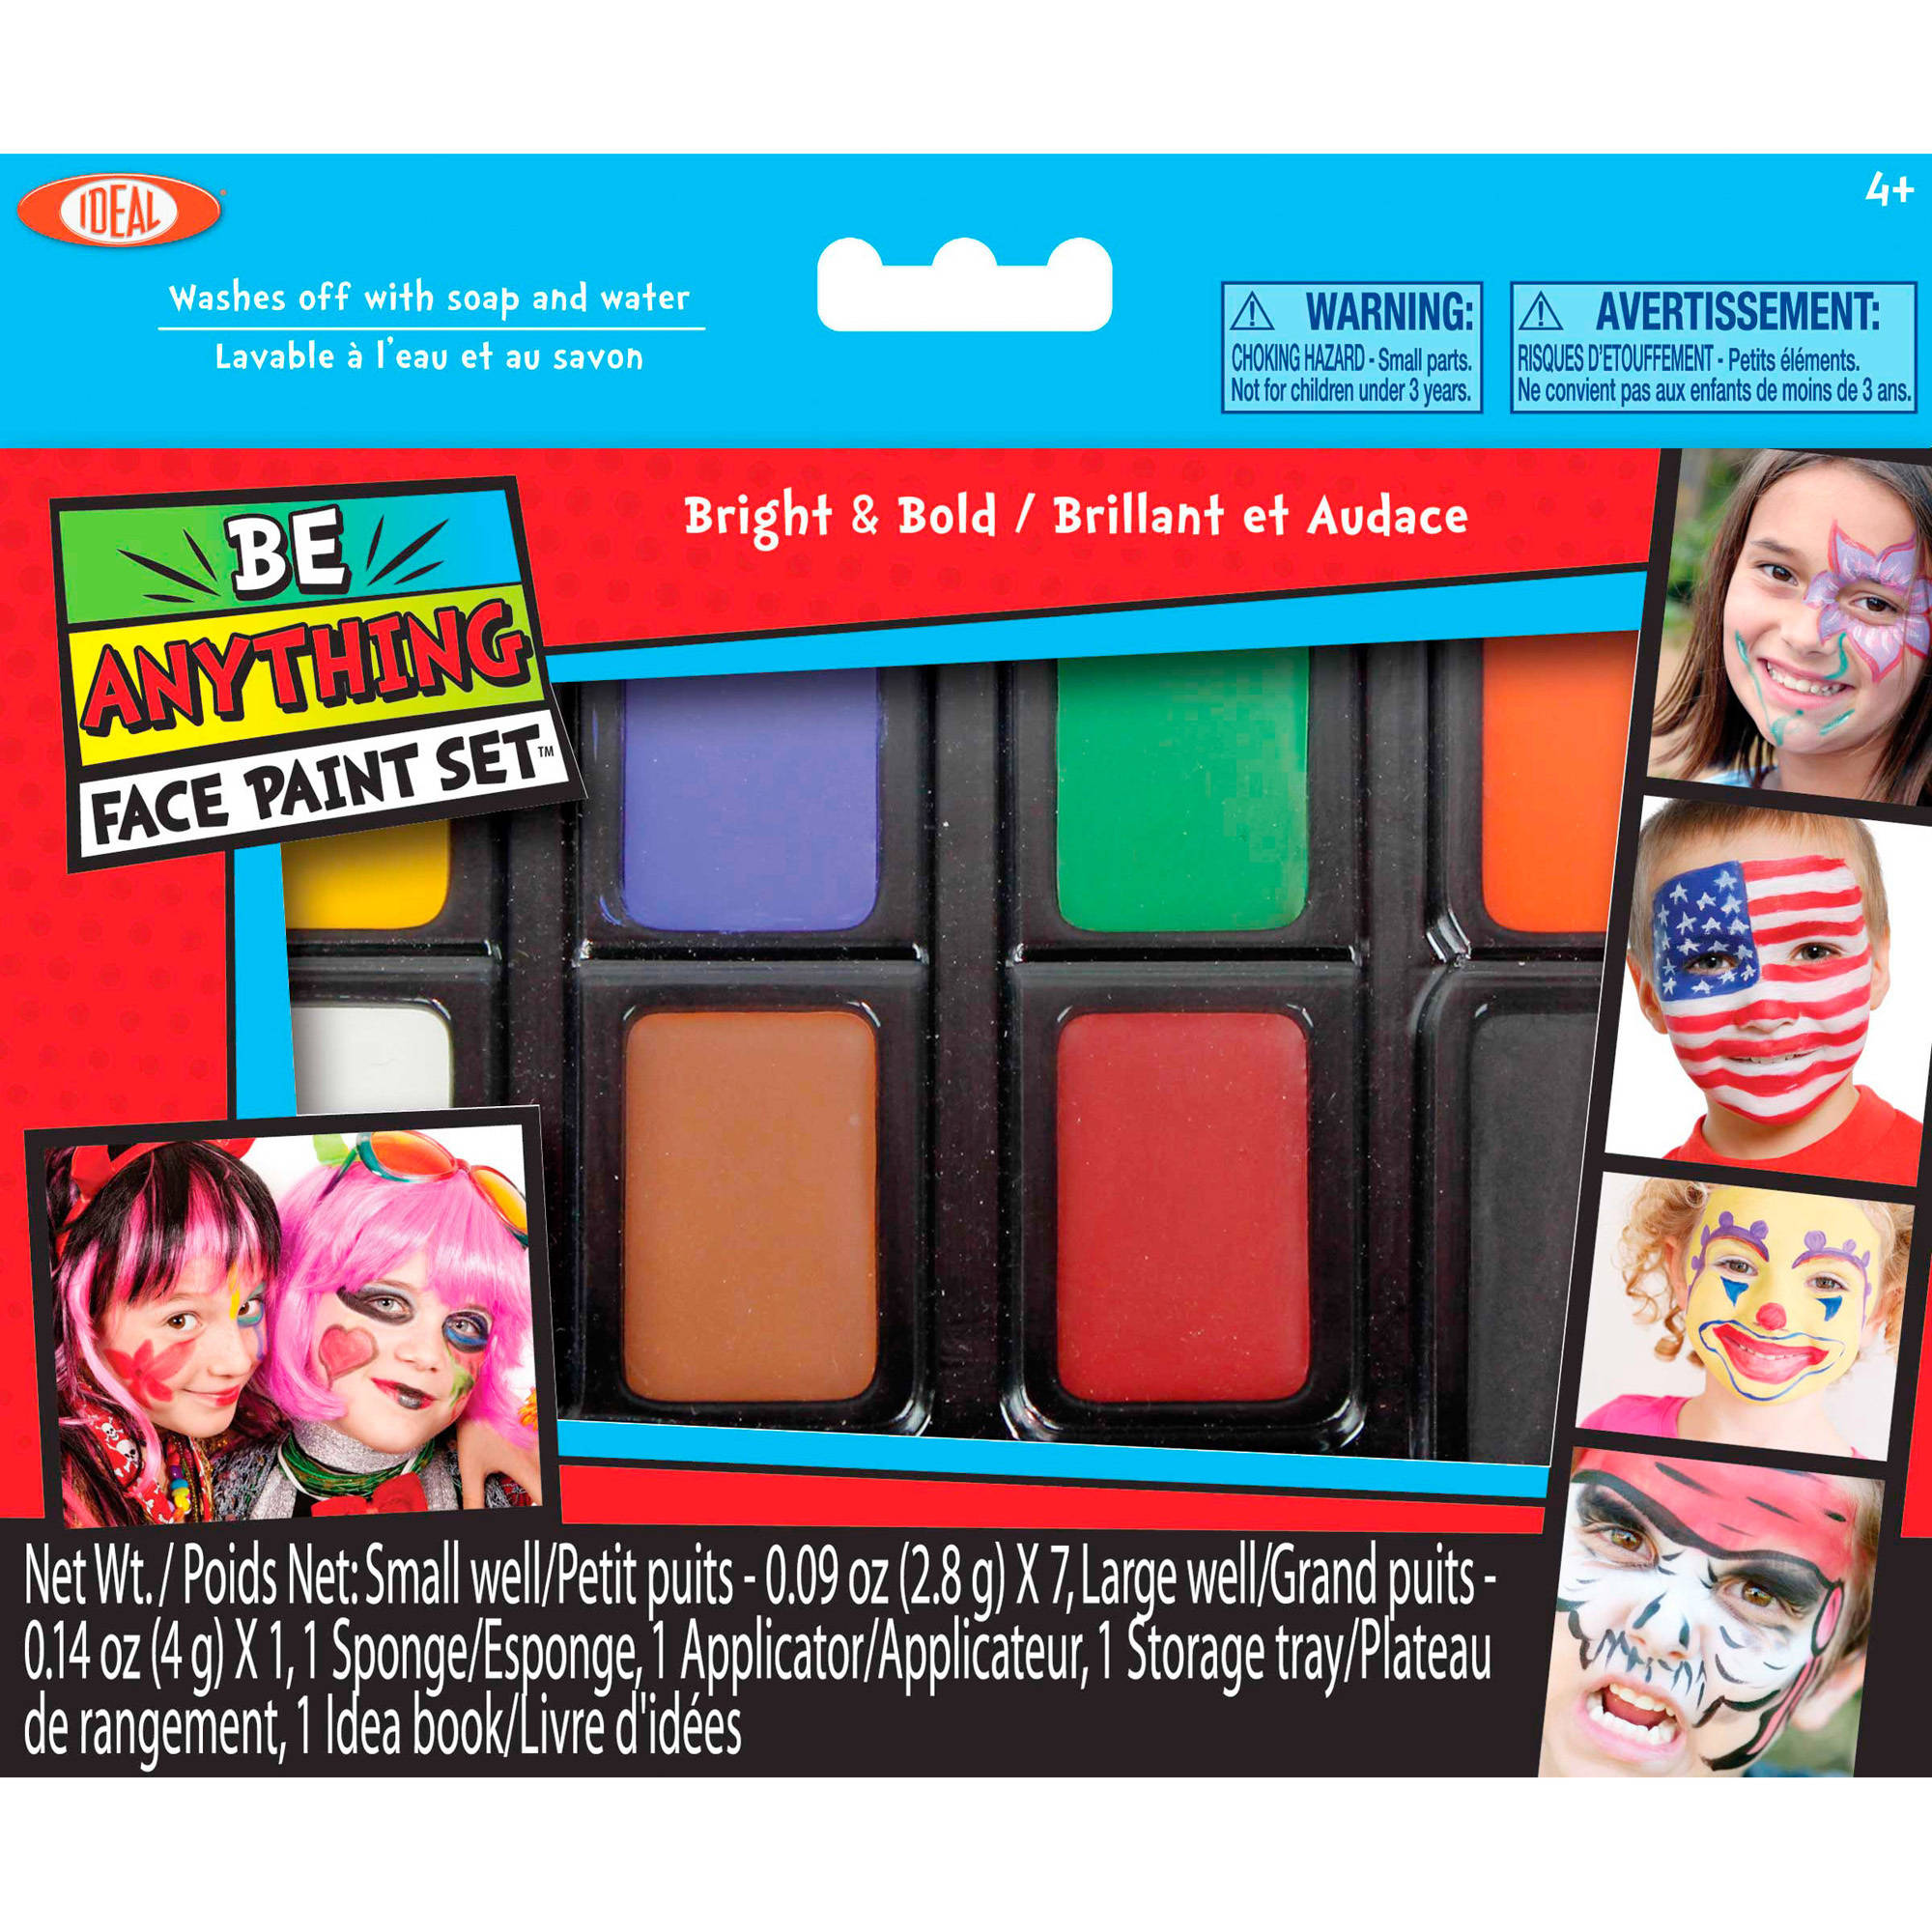 POOF-Slinky Ideal Be Anything! Bright and Bold Face Painting Kit, 8-Color Set